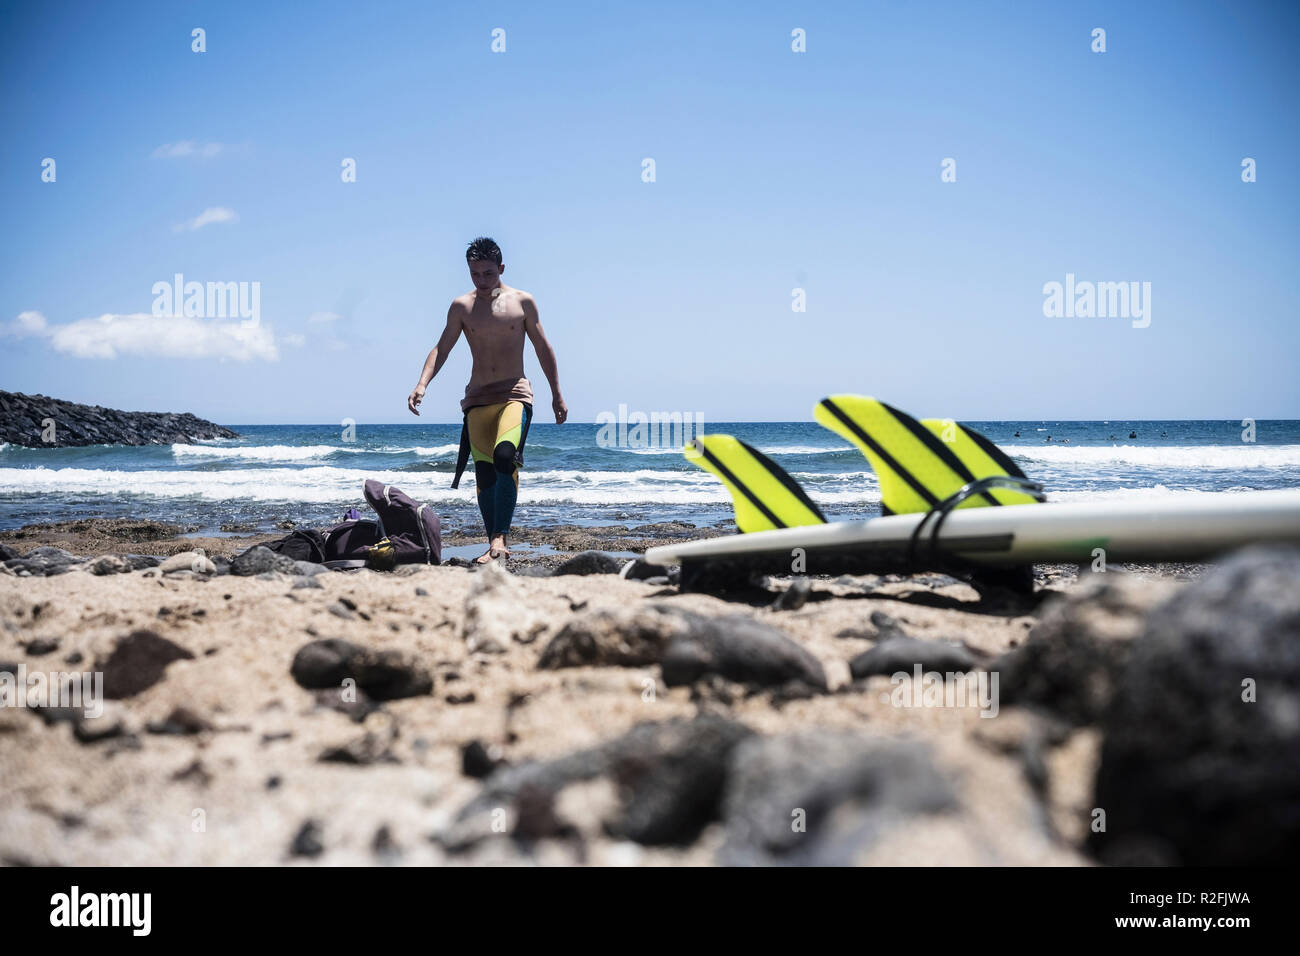 young cute teenager male surfer coming out the water after a surf session in the ocean waves. table and fins on the rocks. vacation and water sport activity concept for happy alternative people. tropical beach - Stock Image